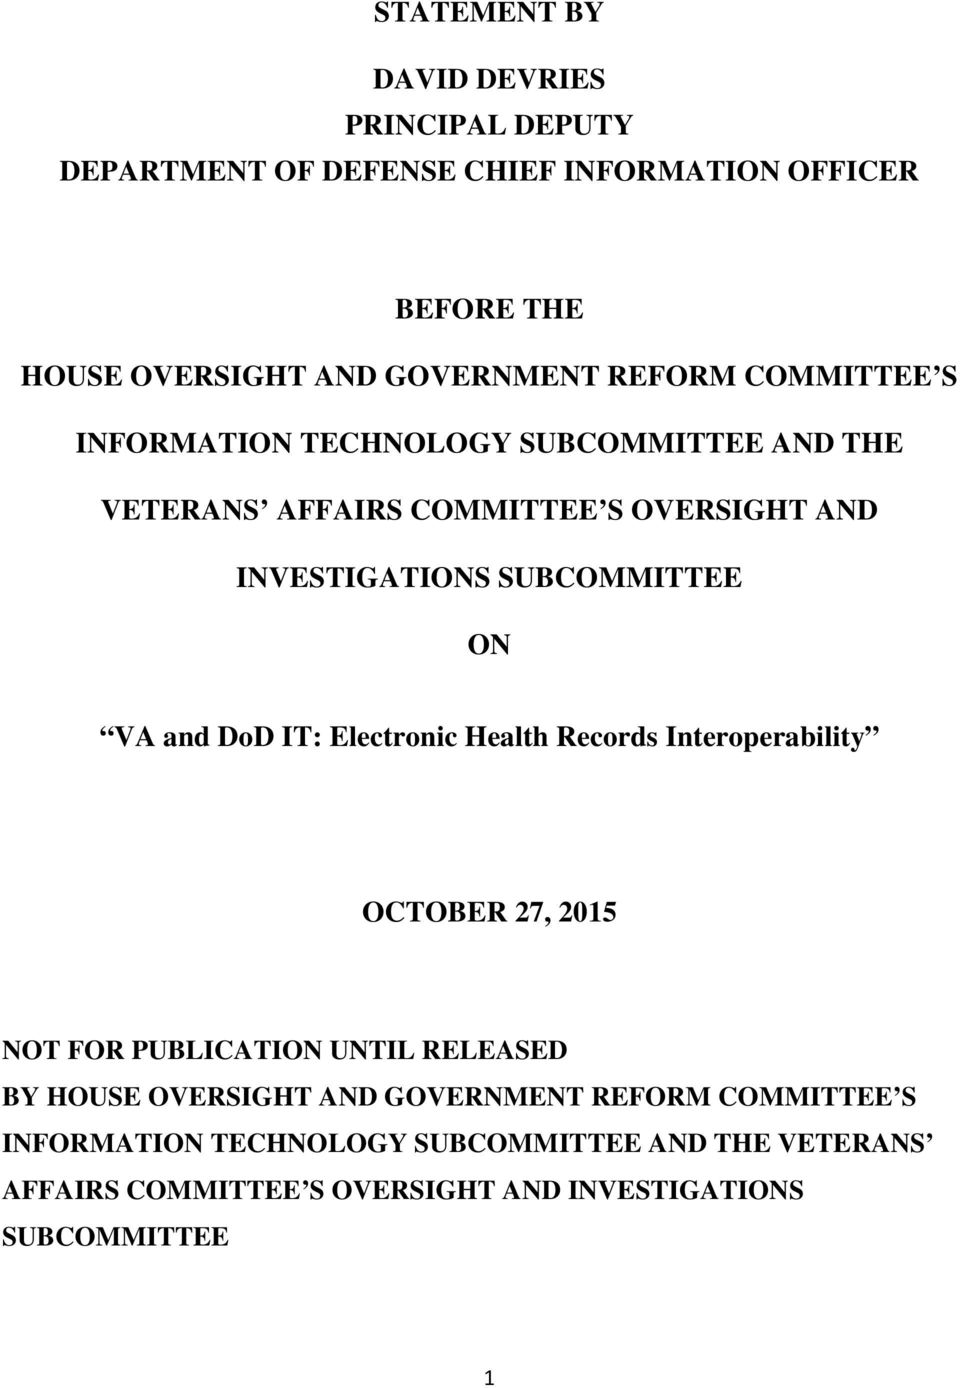 VA and DoD IT: Electronic Health Records Interoperability OCTOBER 27, 2015 NOT FOR PUBLICATION UNTIL RELEASED BY HOUSE OVERSIGHT AND